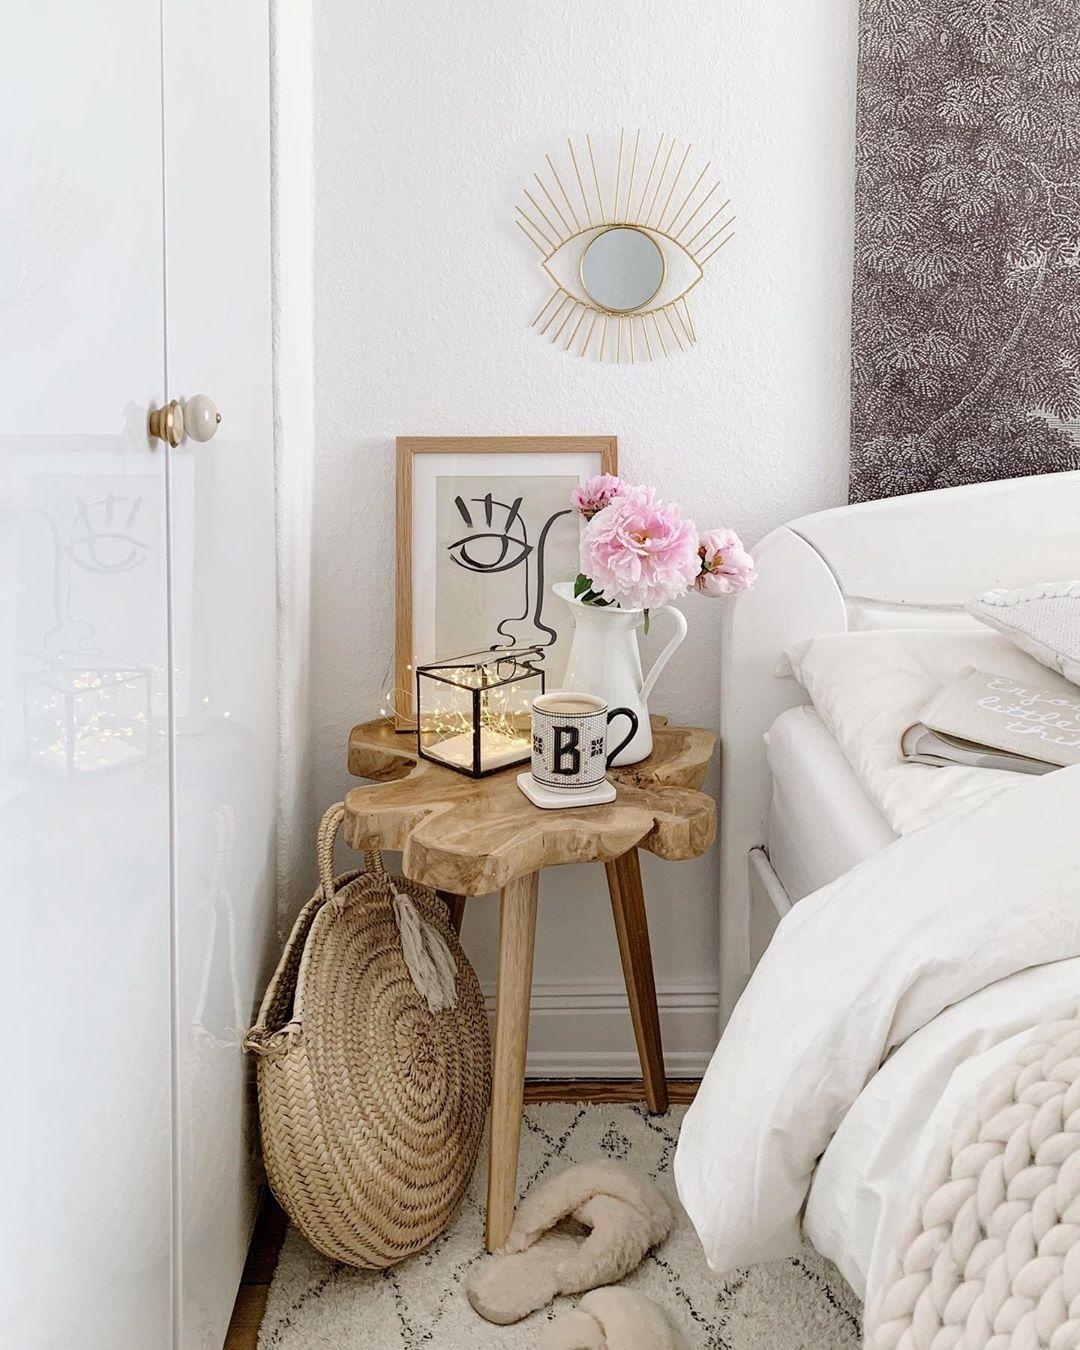 Ein kaffee am morgen schlafzimmer bett bettwaesche bedroom boho scandi nordic whiteliving coffee couchliebt  fcf3060b 00e4 4383 ac0a b79a987064ea